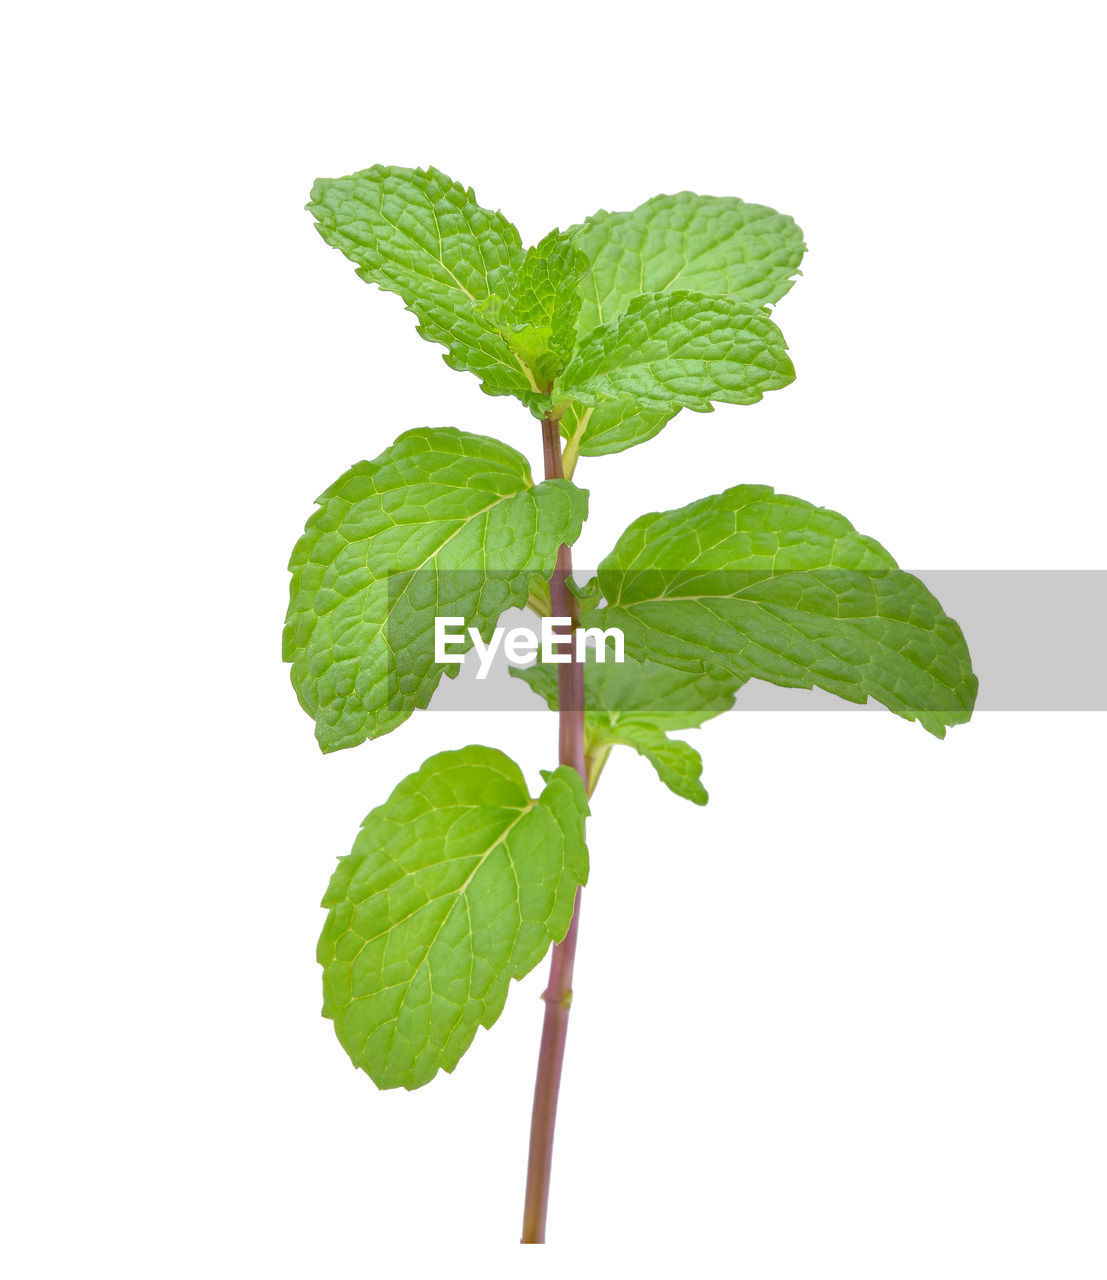 leaf, plant part, studio shot, green color, white background, indoors, close-up, freshness, nature, plant, plant stem, no people, cut out, copy space, food and drink, herb, leaves, beauty in nature, food, mint leaf - culinary